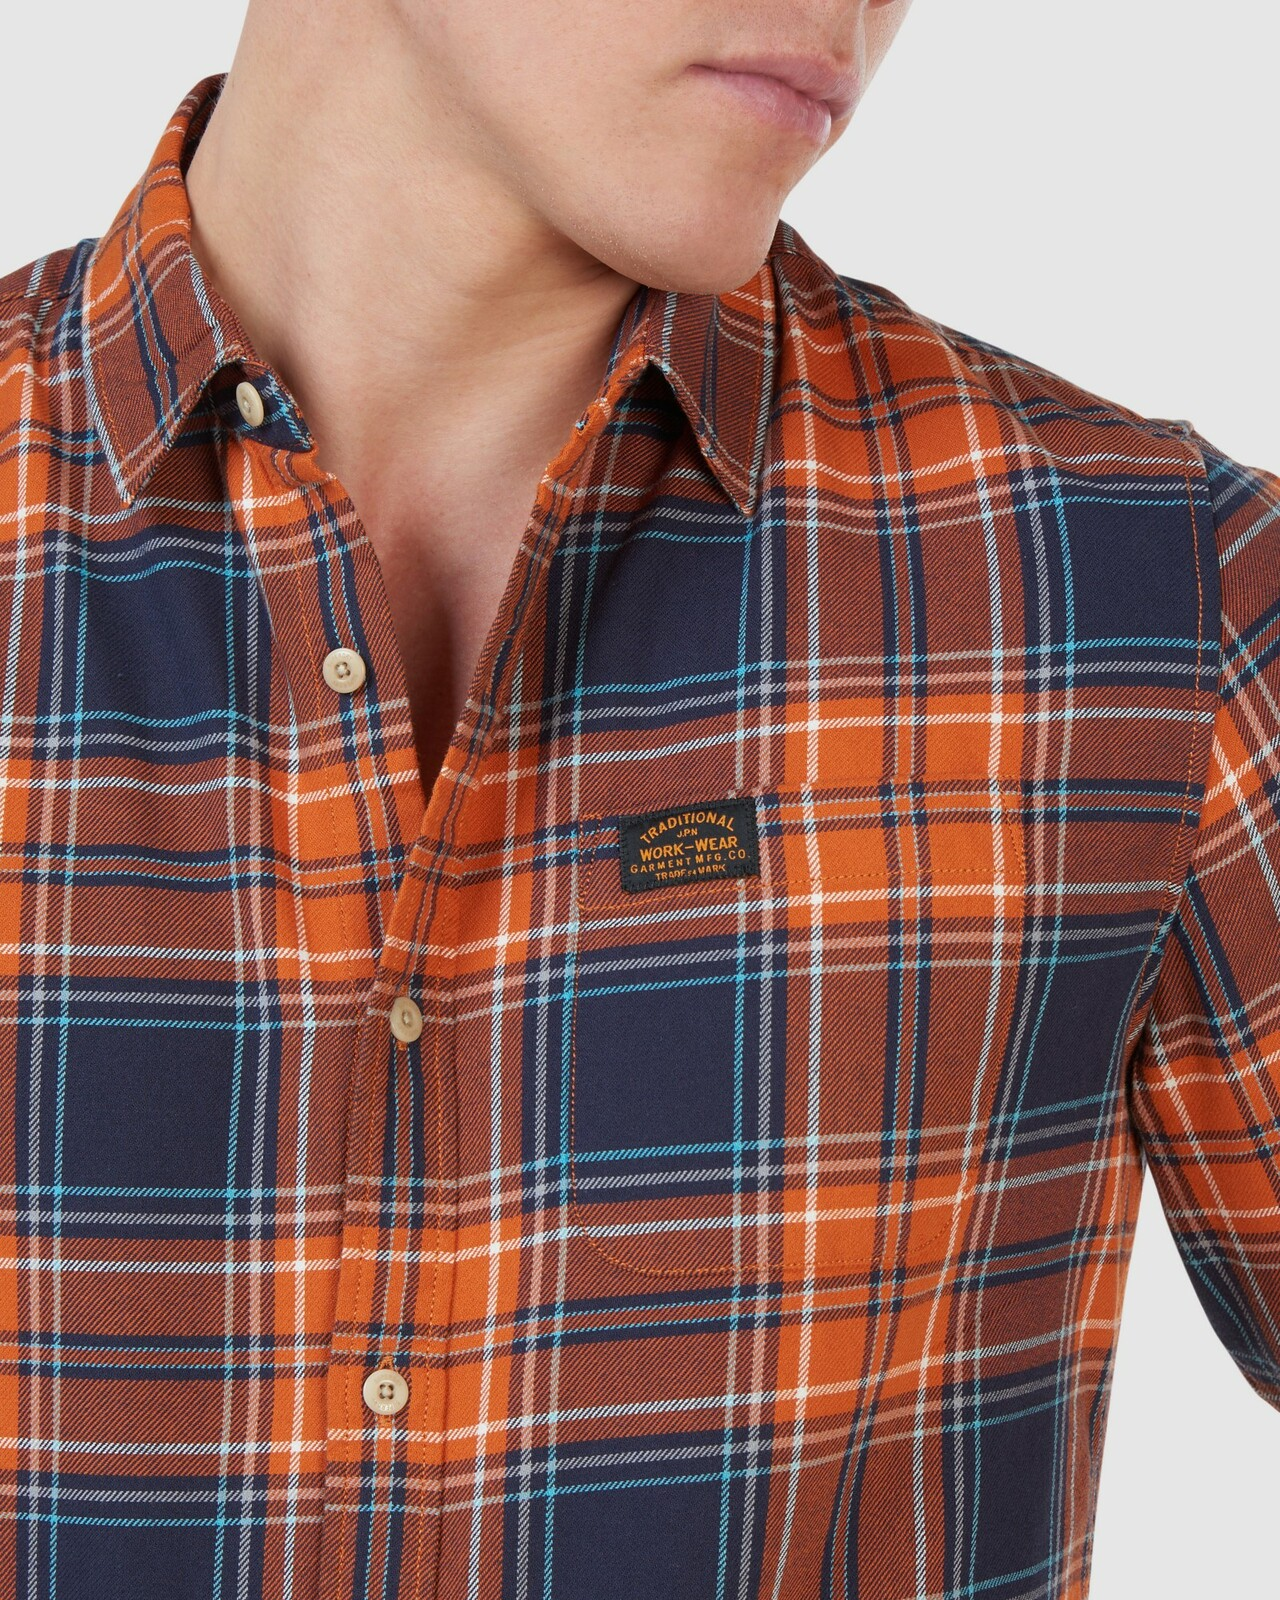 Superdry Mens WORKWEAR SHIRT Neutrals Check Shirts 4